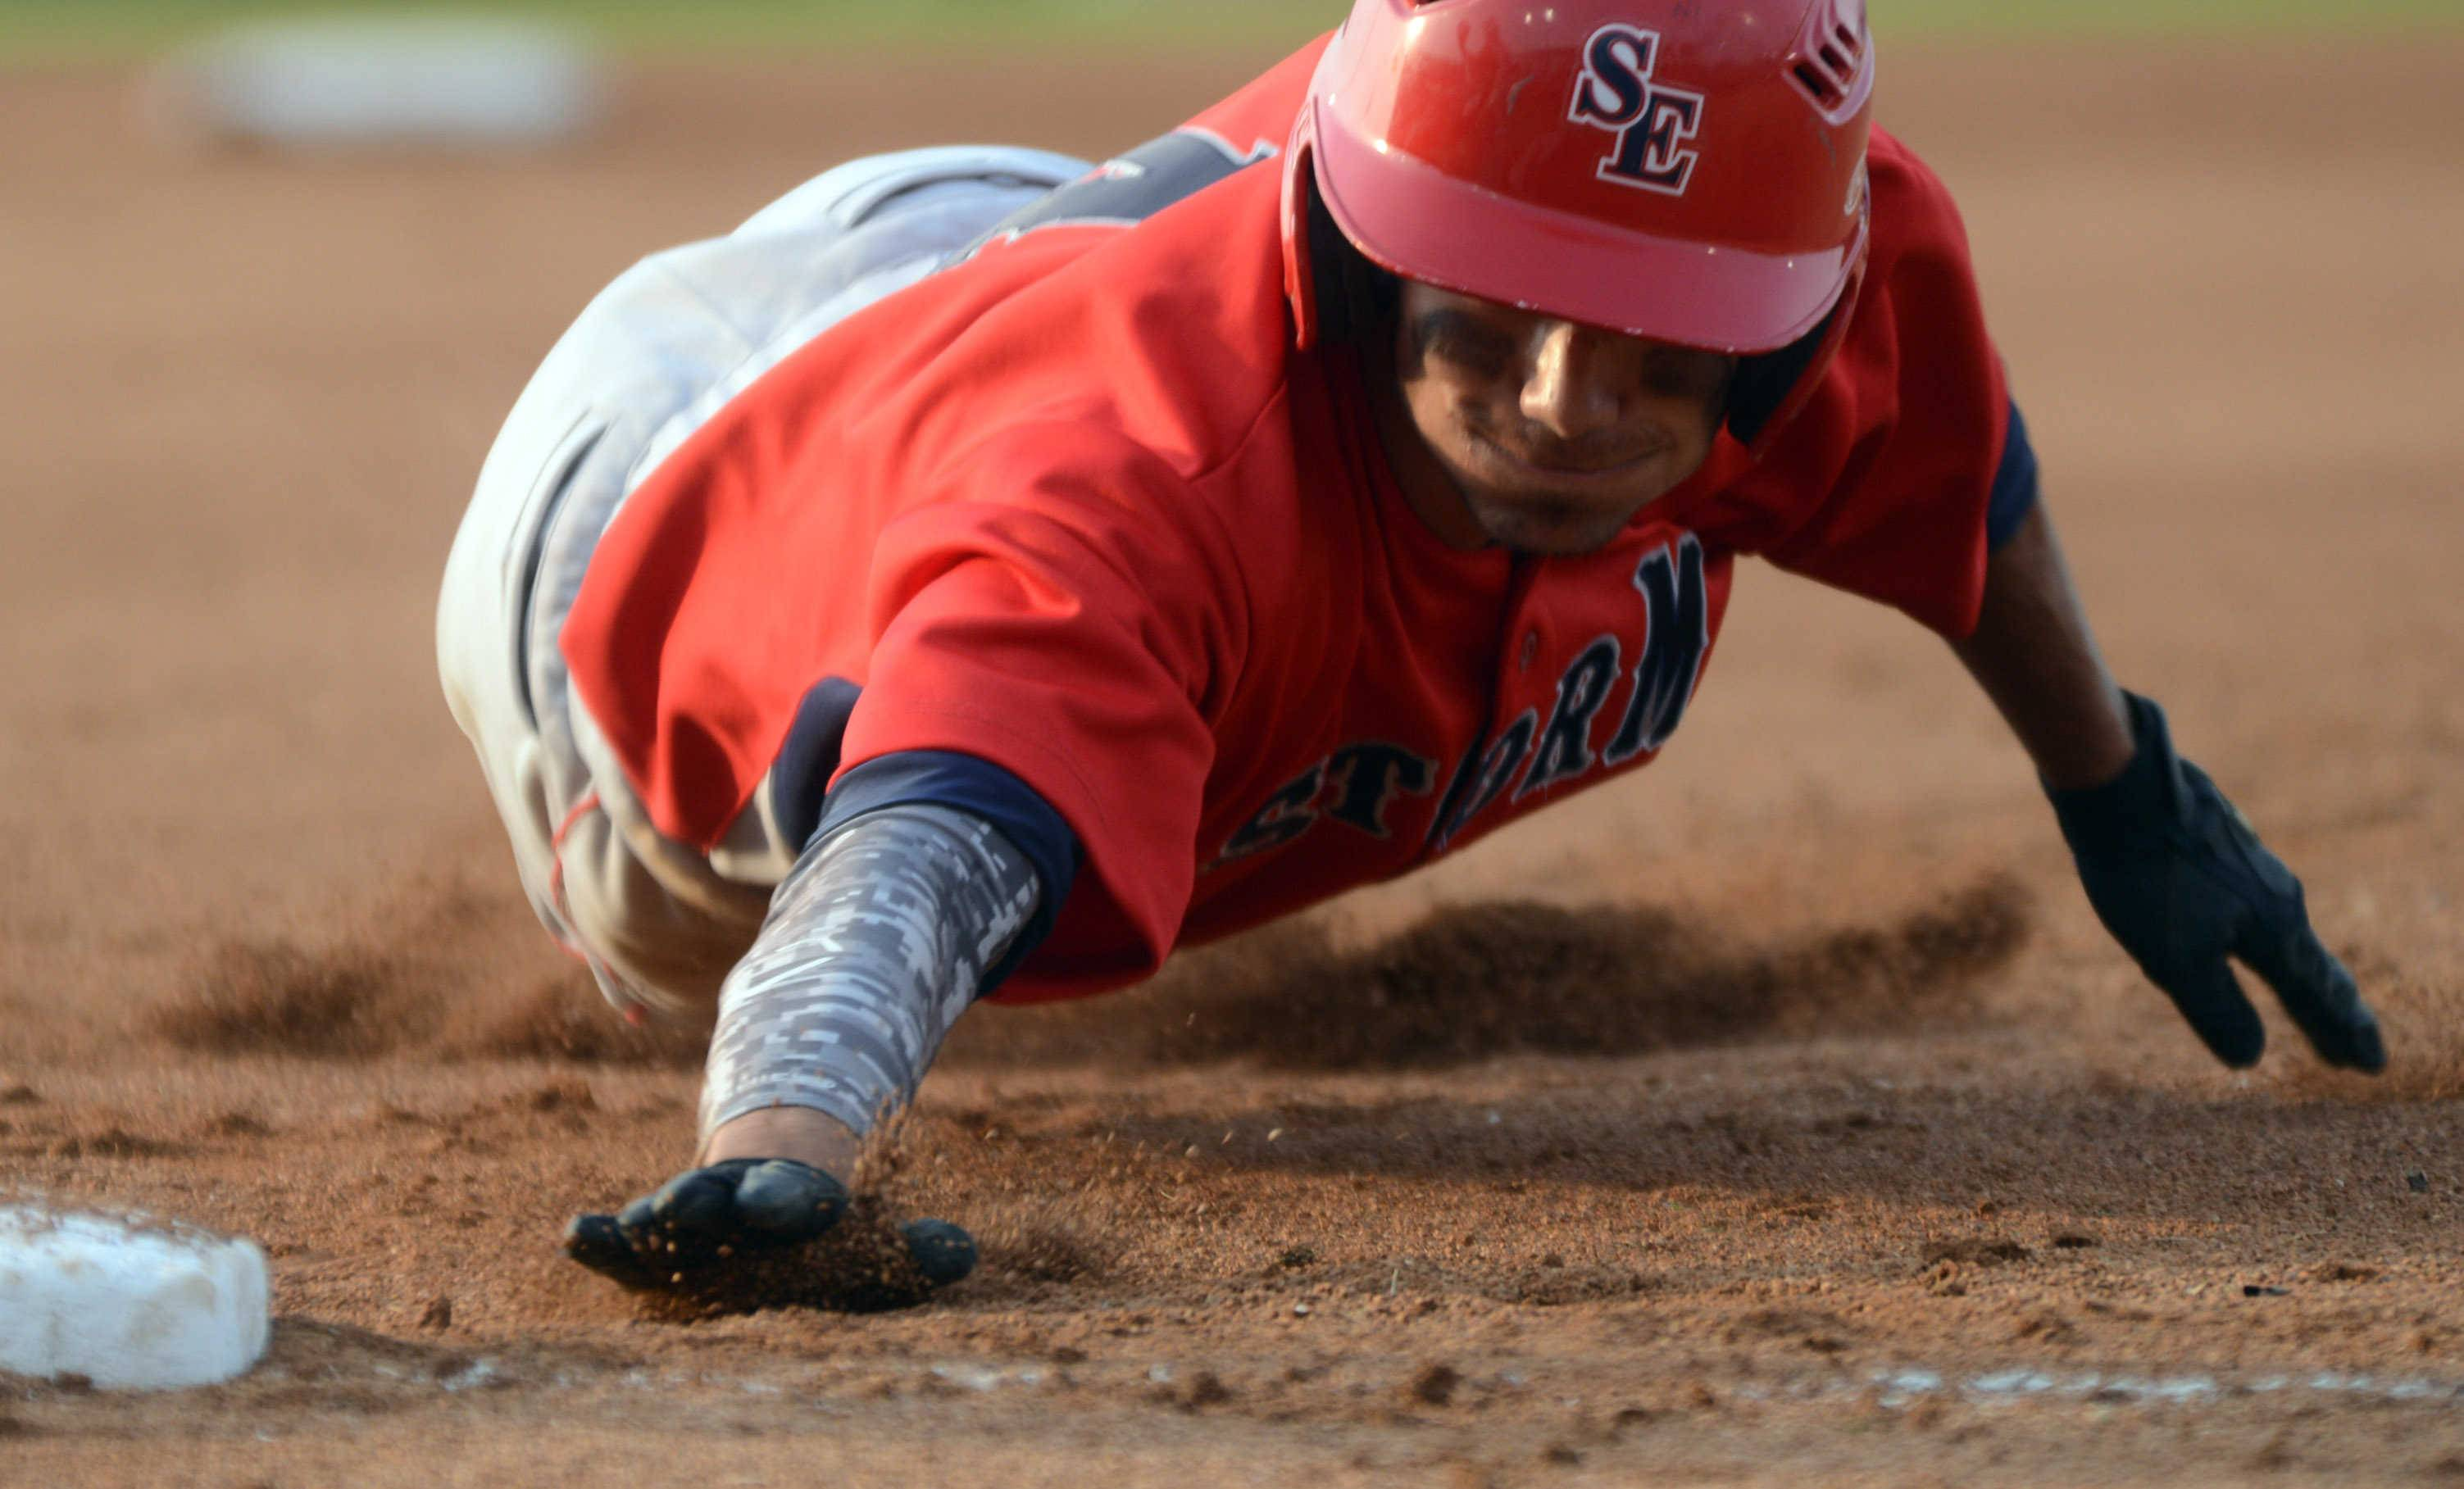 South Elgin's Dane Toppel dives back to first base safely during the Class 4A supersectional baseball game at Boomers Stadium in Schaumburg on Monday night. The Storm won 7-6.